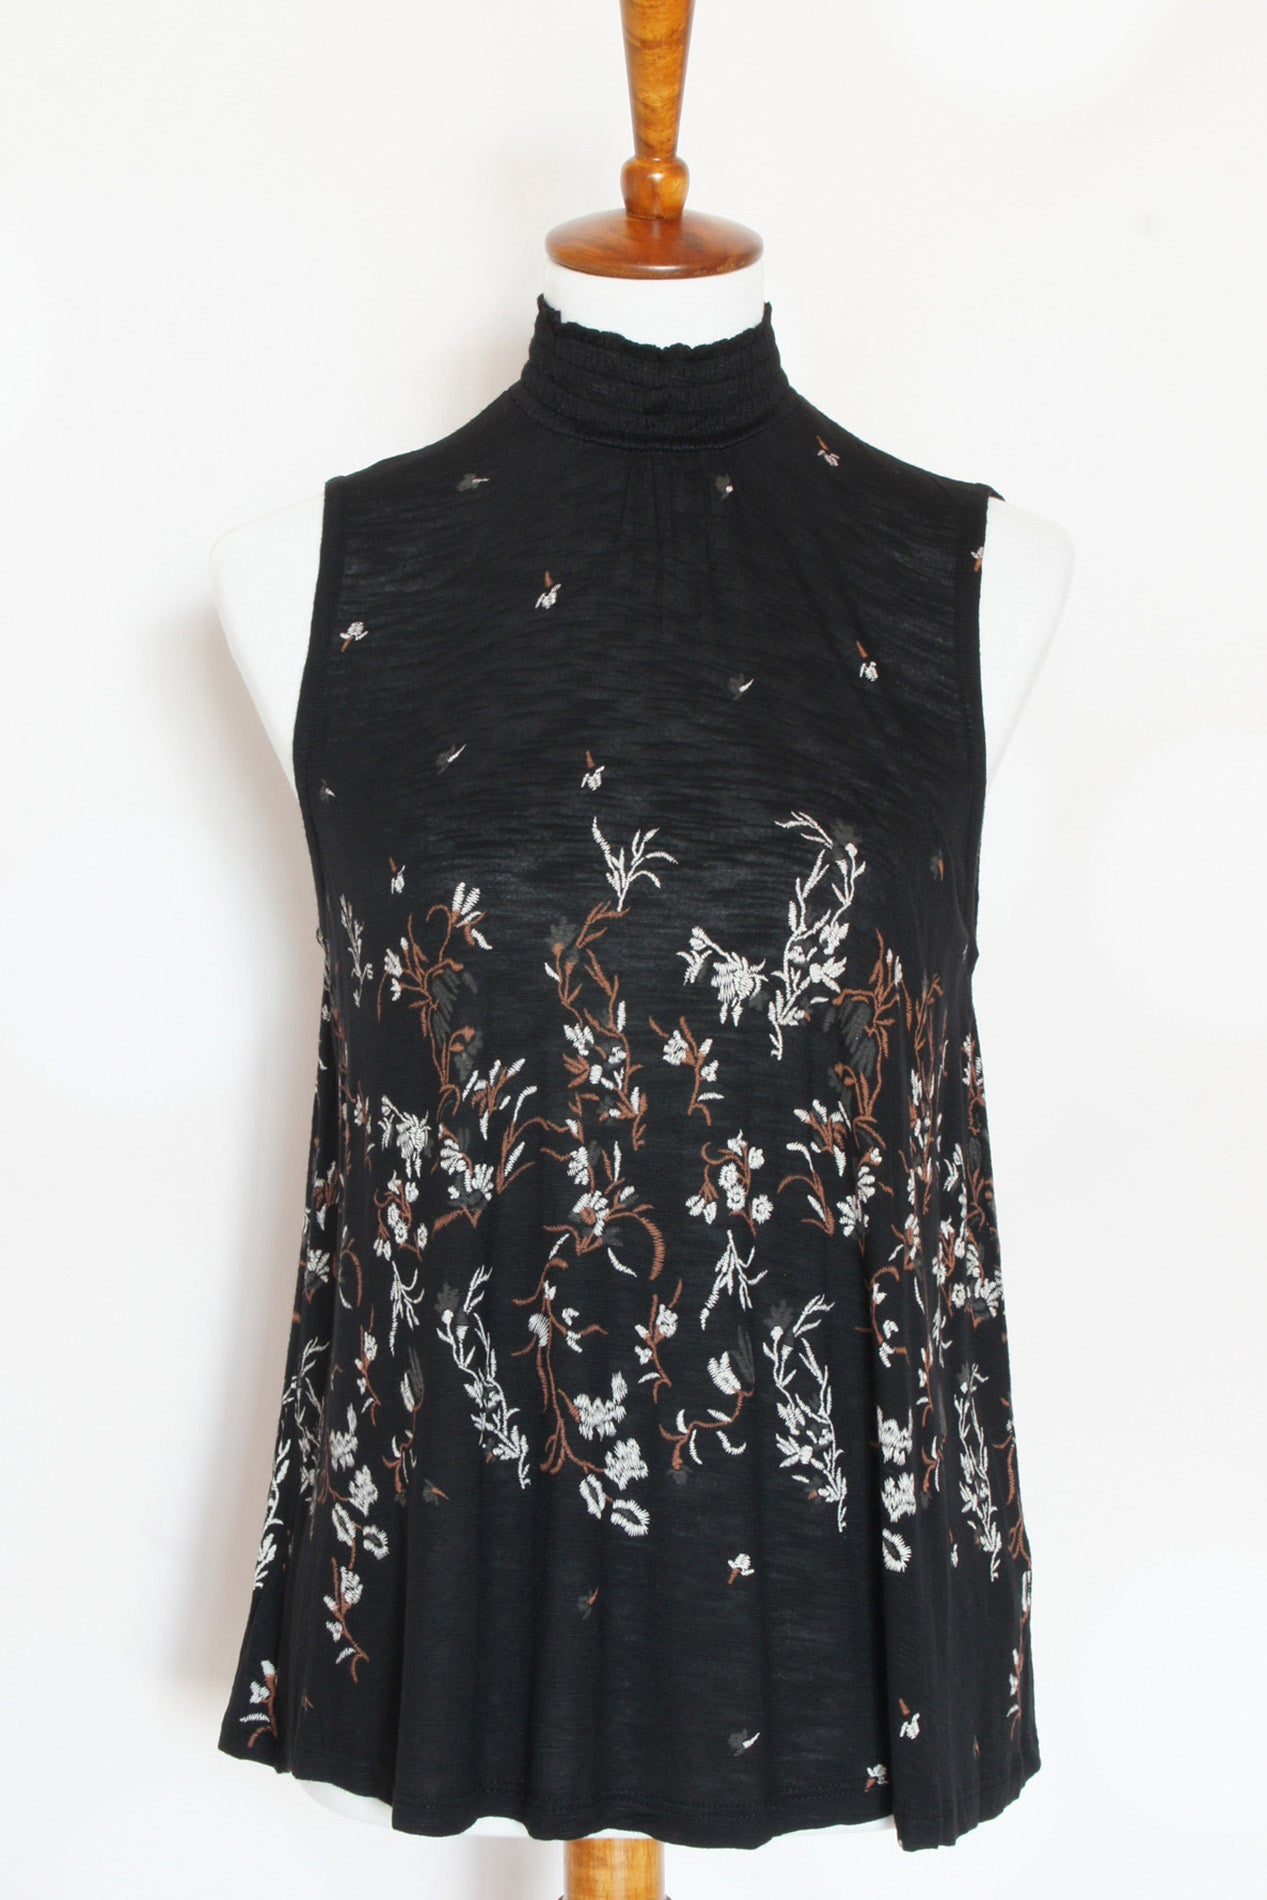 Mock Neck Black Printed Top - Grandir Fashions